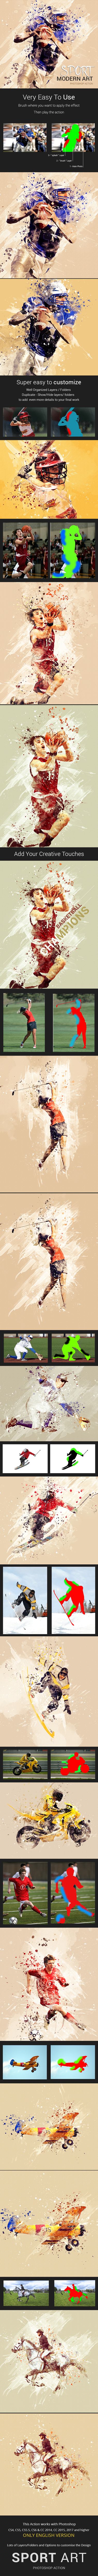 Sport Modern Art Photoshop Action - Photo Effects Actions